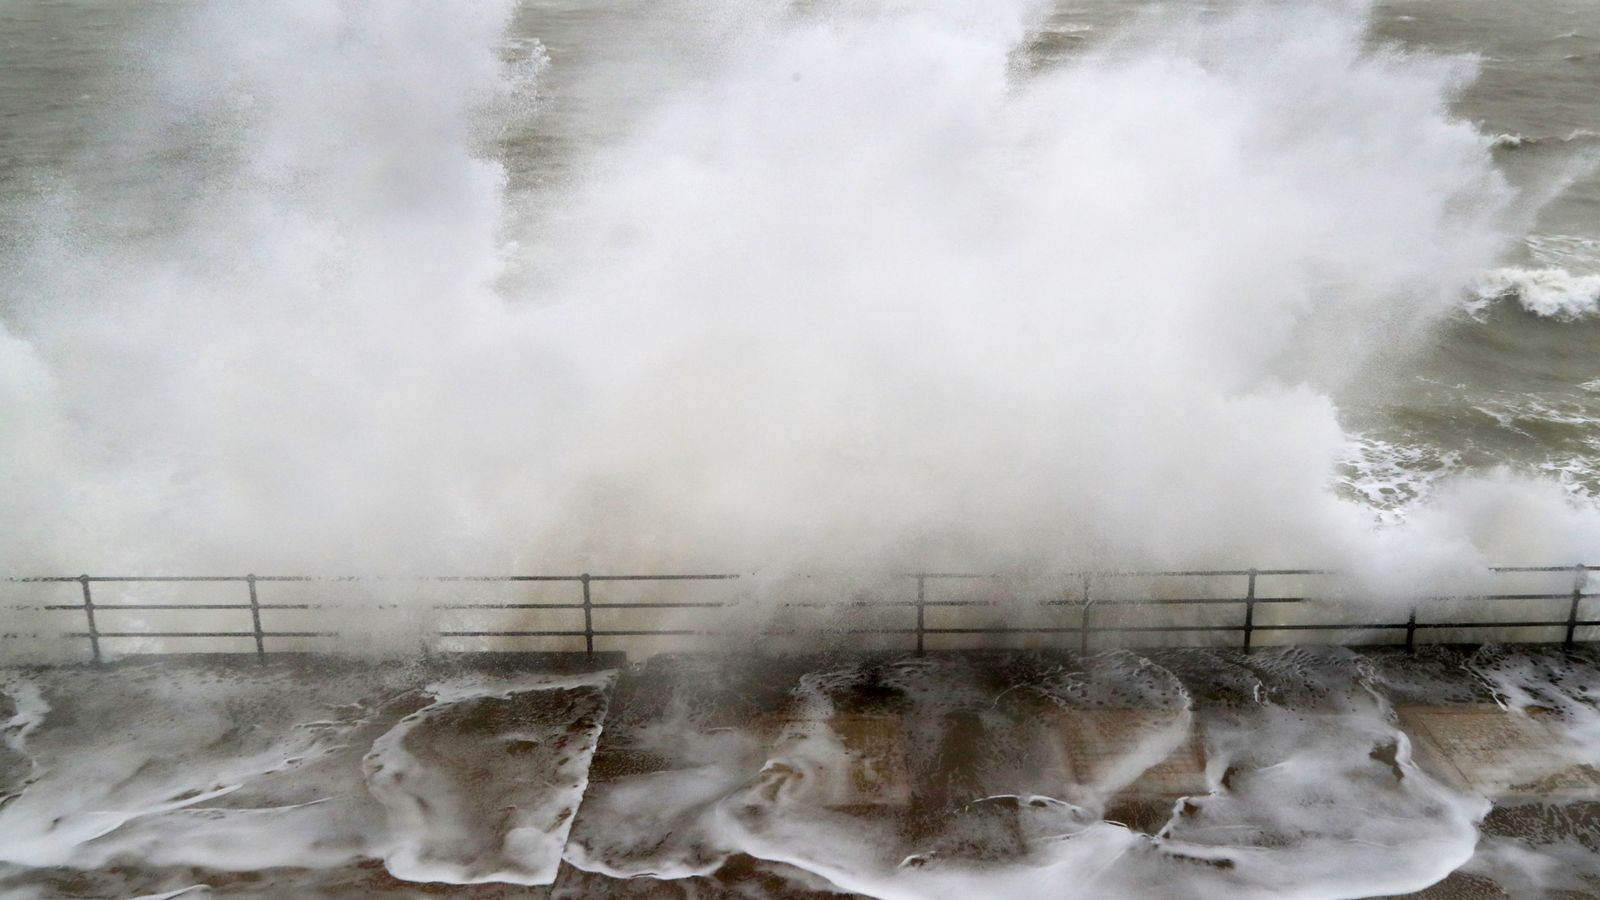 Storm Jorge hits UK with another deluge of rain and 60mph winds